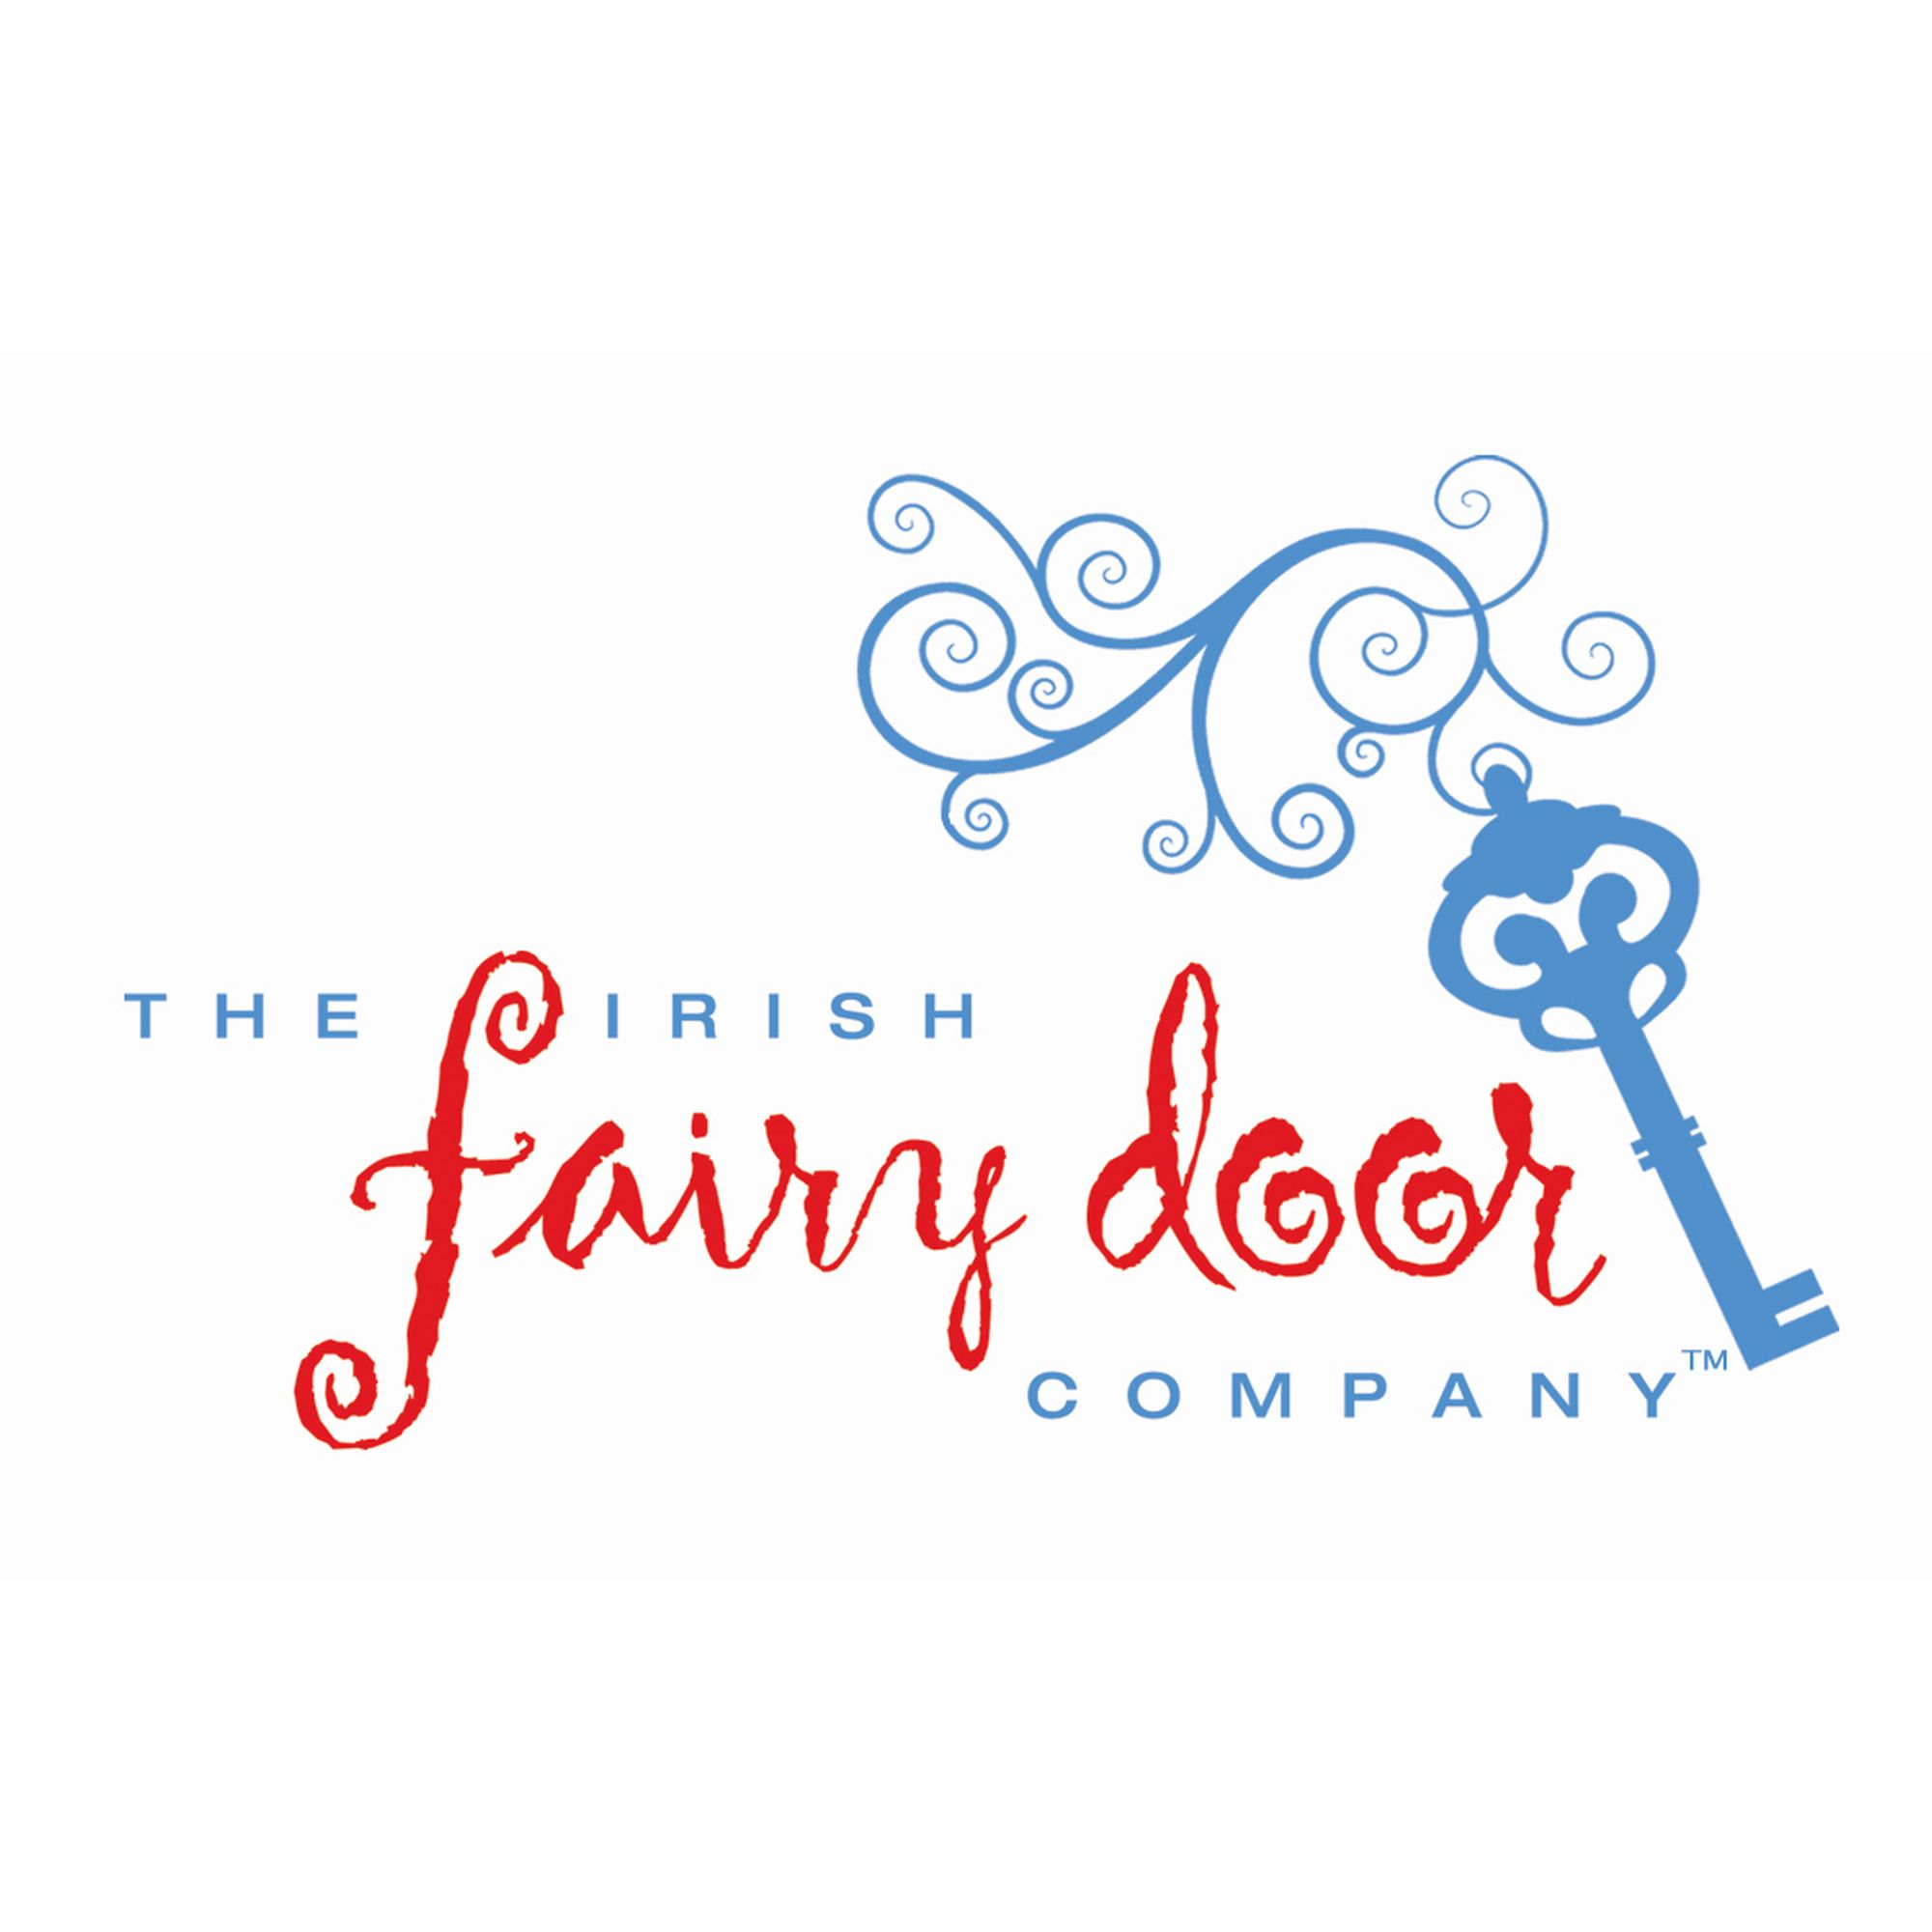 Irish Fairy Doors